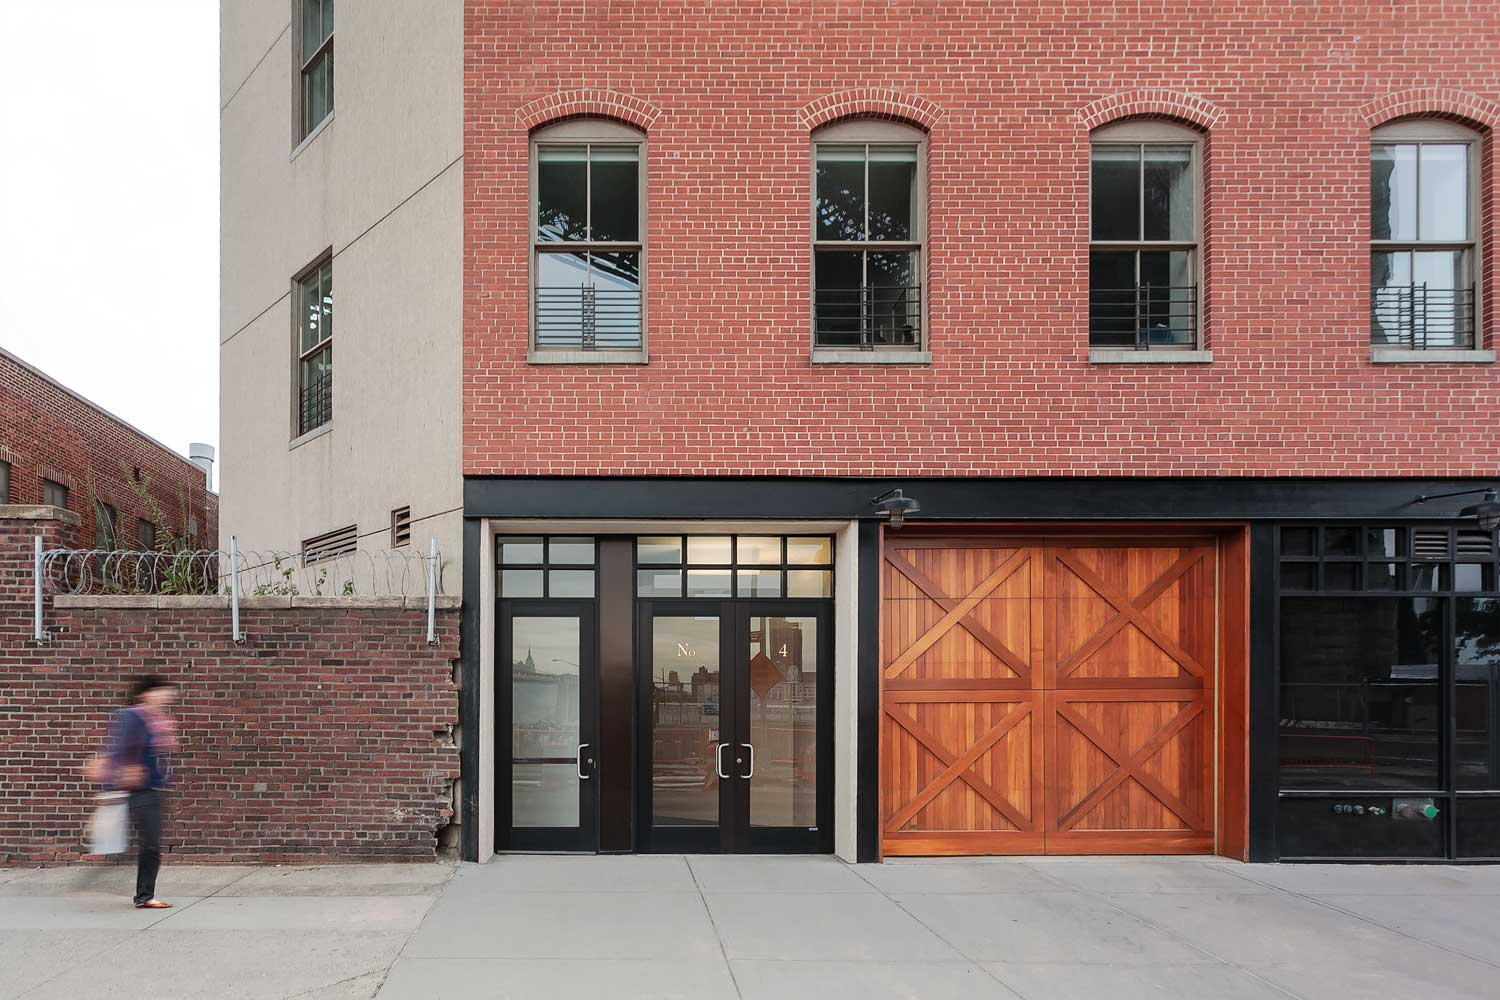 Condo and garage entry to this historic rebuild and expansion by OCV Architects.